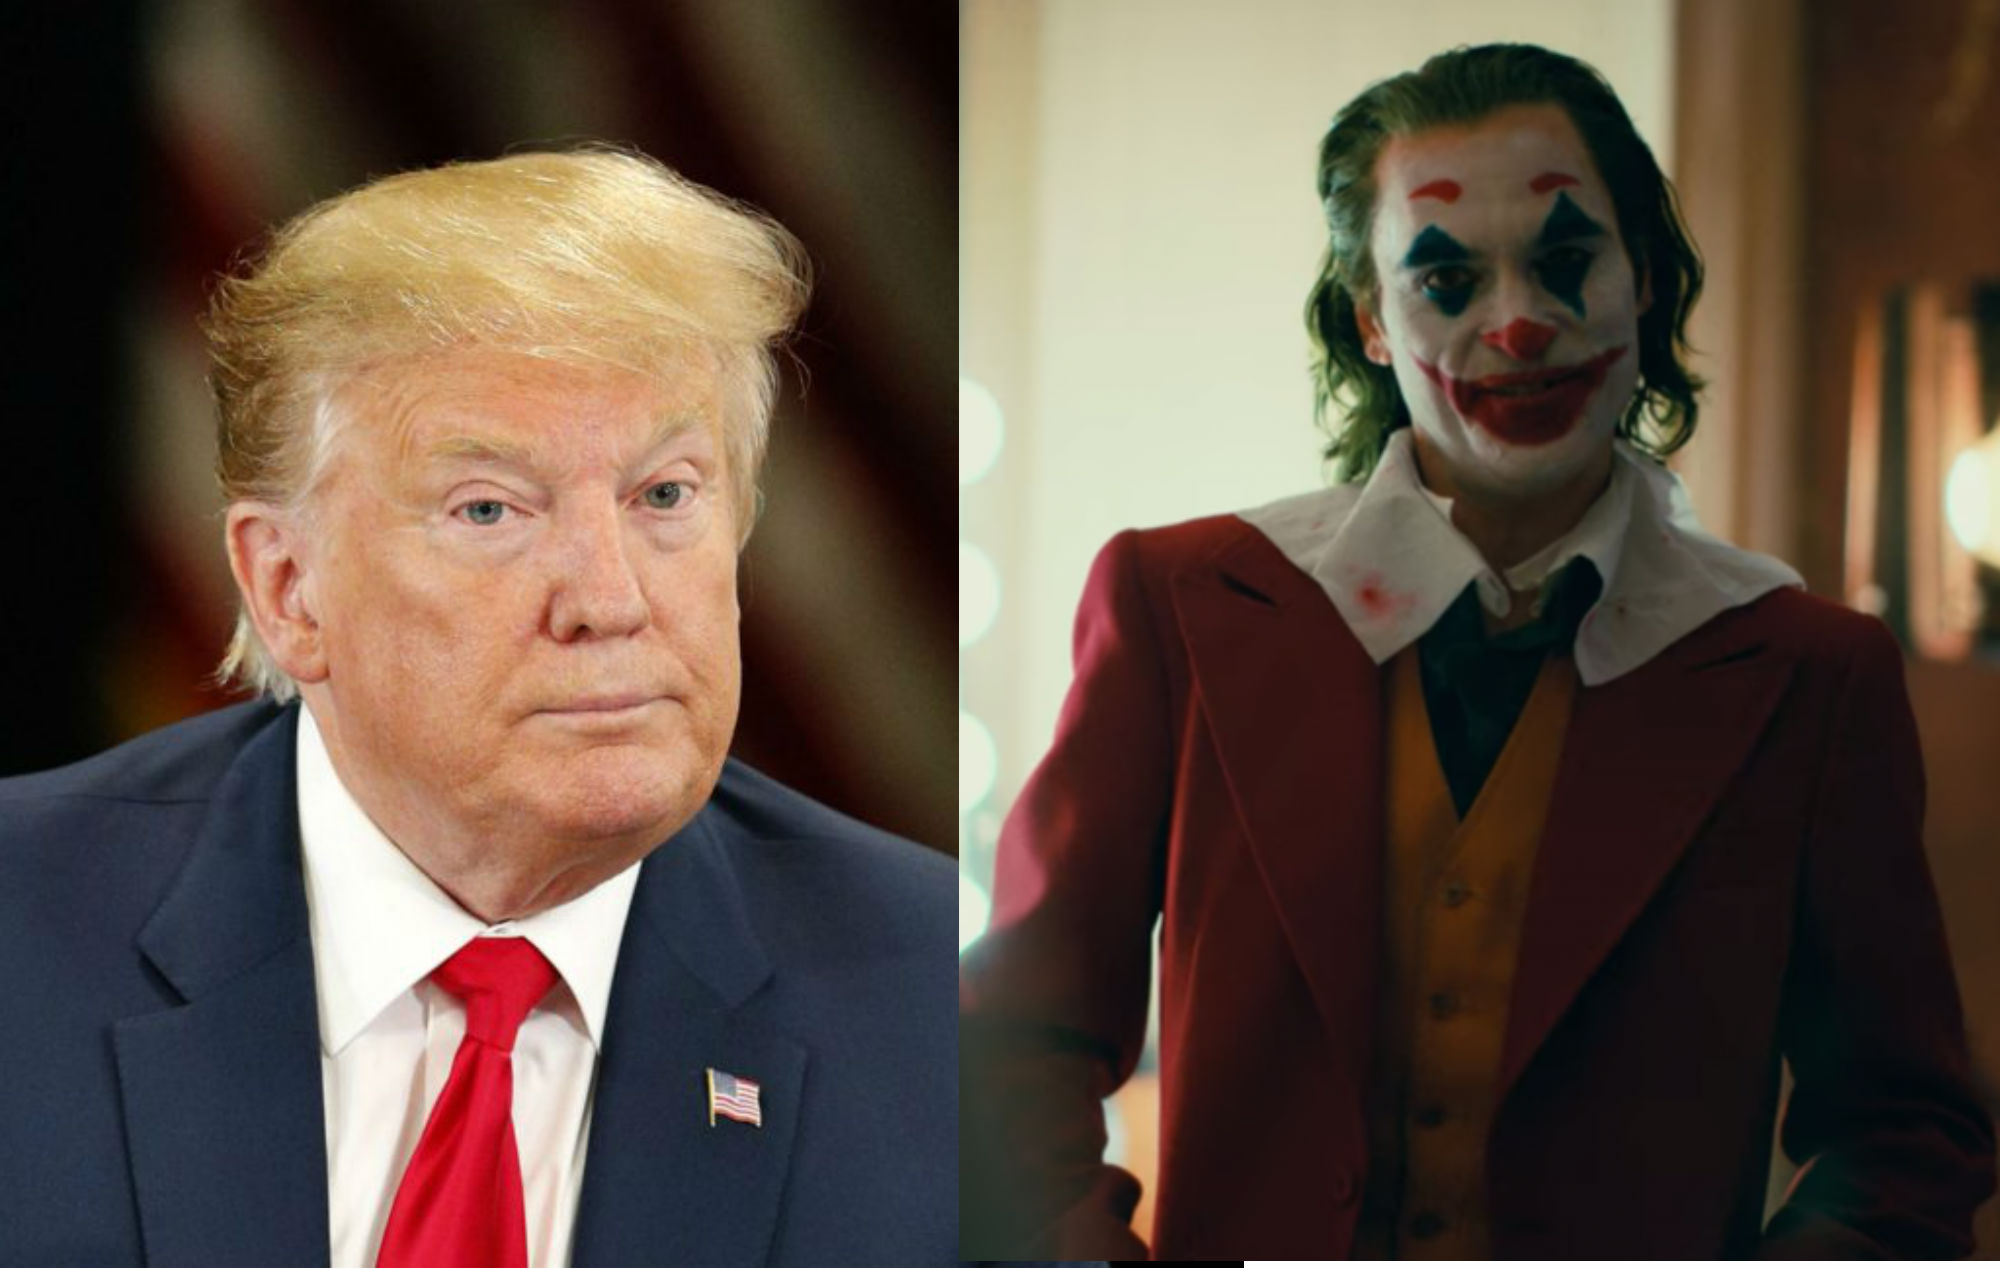 Donald Trump reportedly screened 'Joker' at the White House – and he's a fan